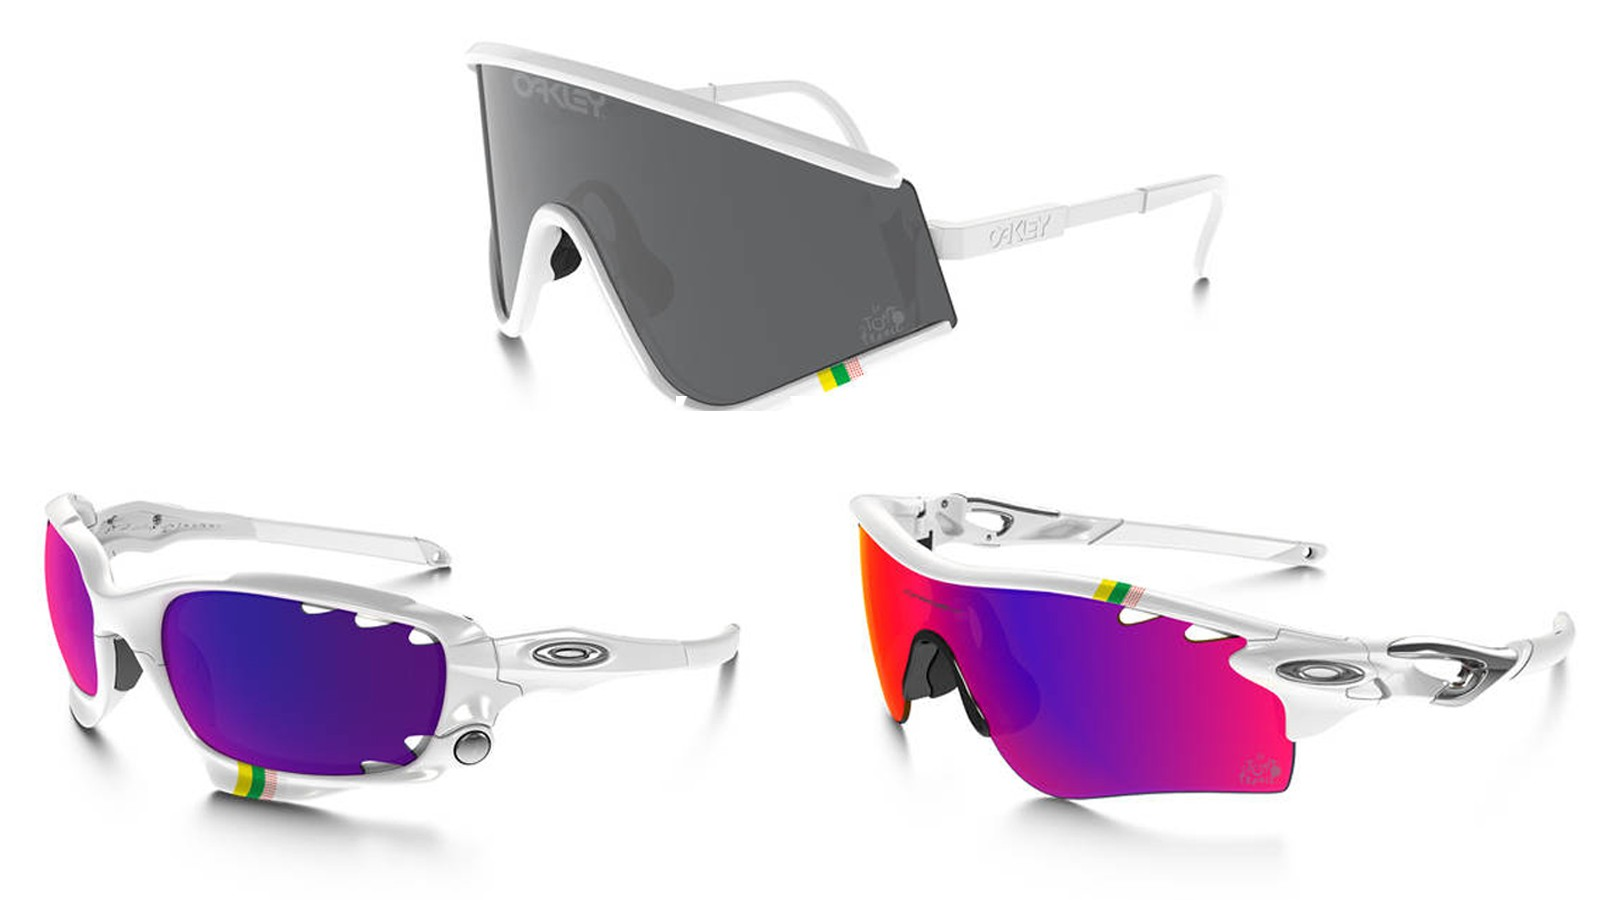 The Tour de France collection comprises three models; Radarlock (right), Eyeshade (top) and Racing Jacket (left)